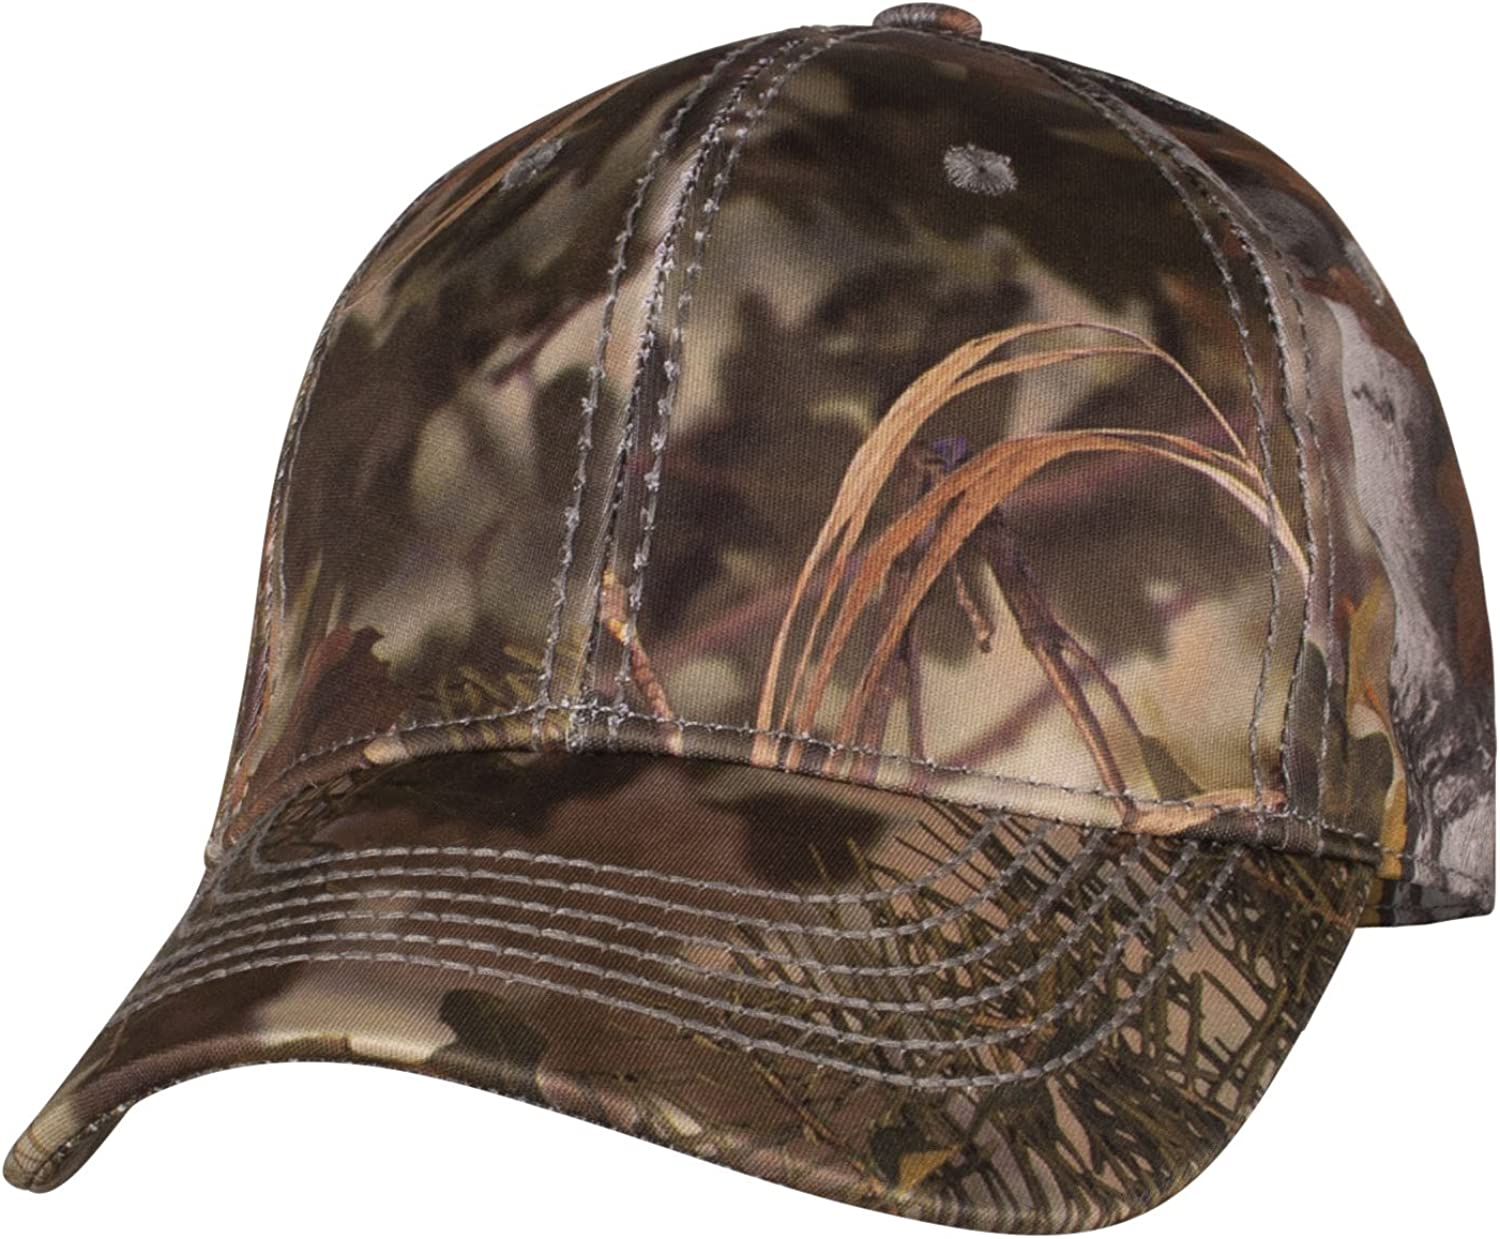 King's Camo KHT1508-MS Hunter Series Hat, One Size, Mountain Shadow